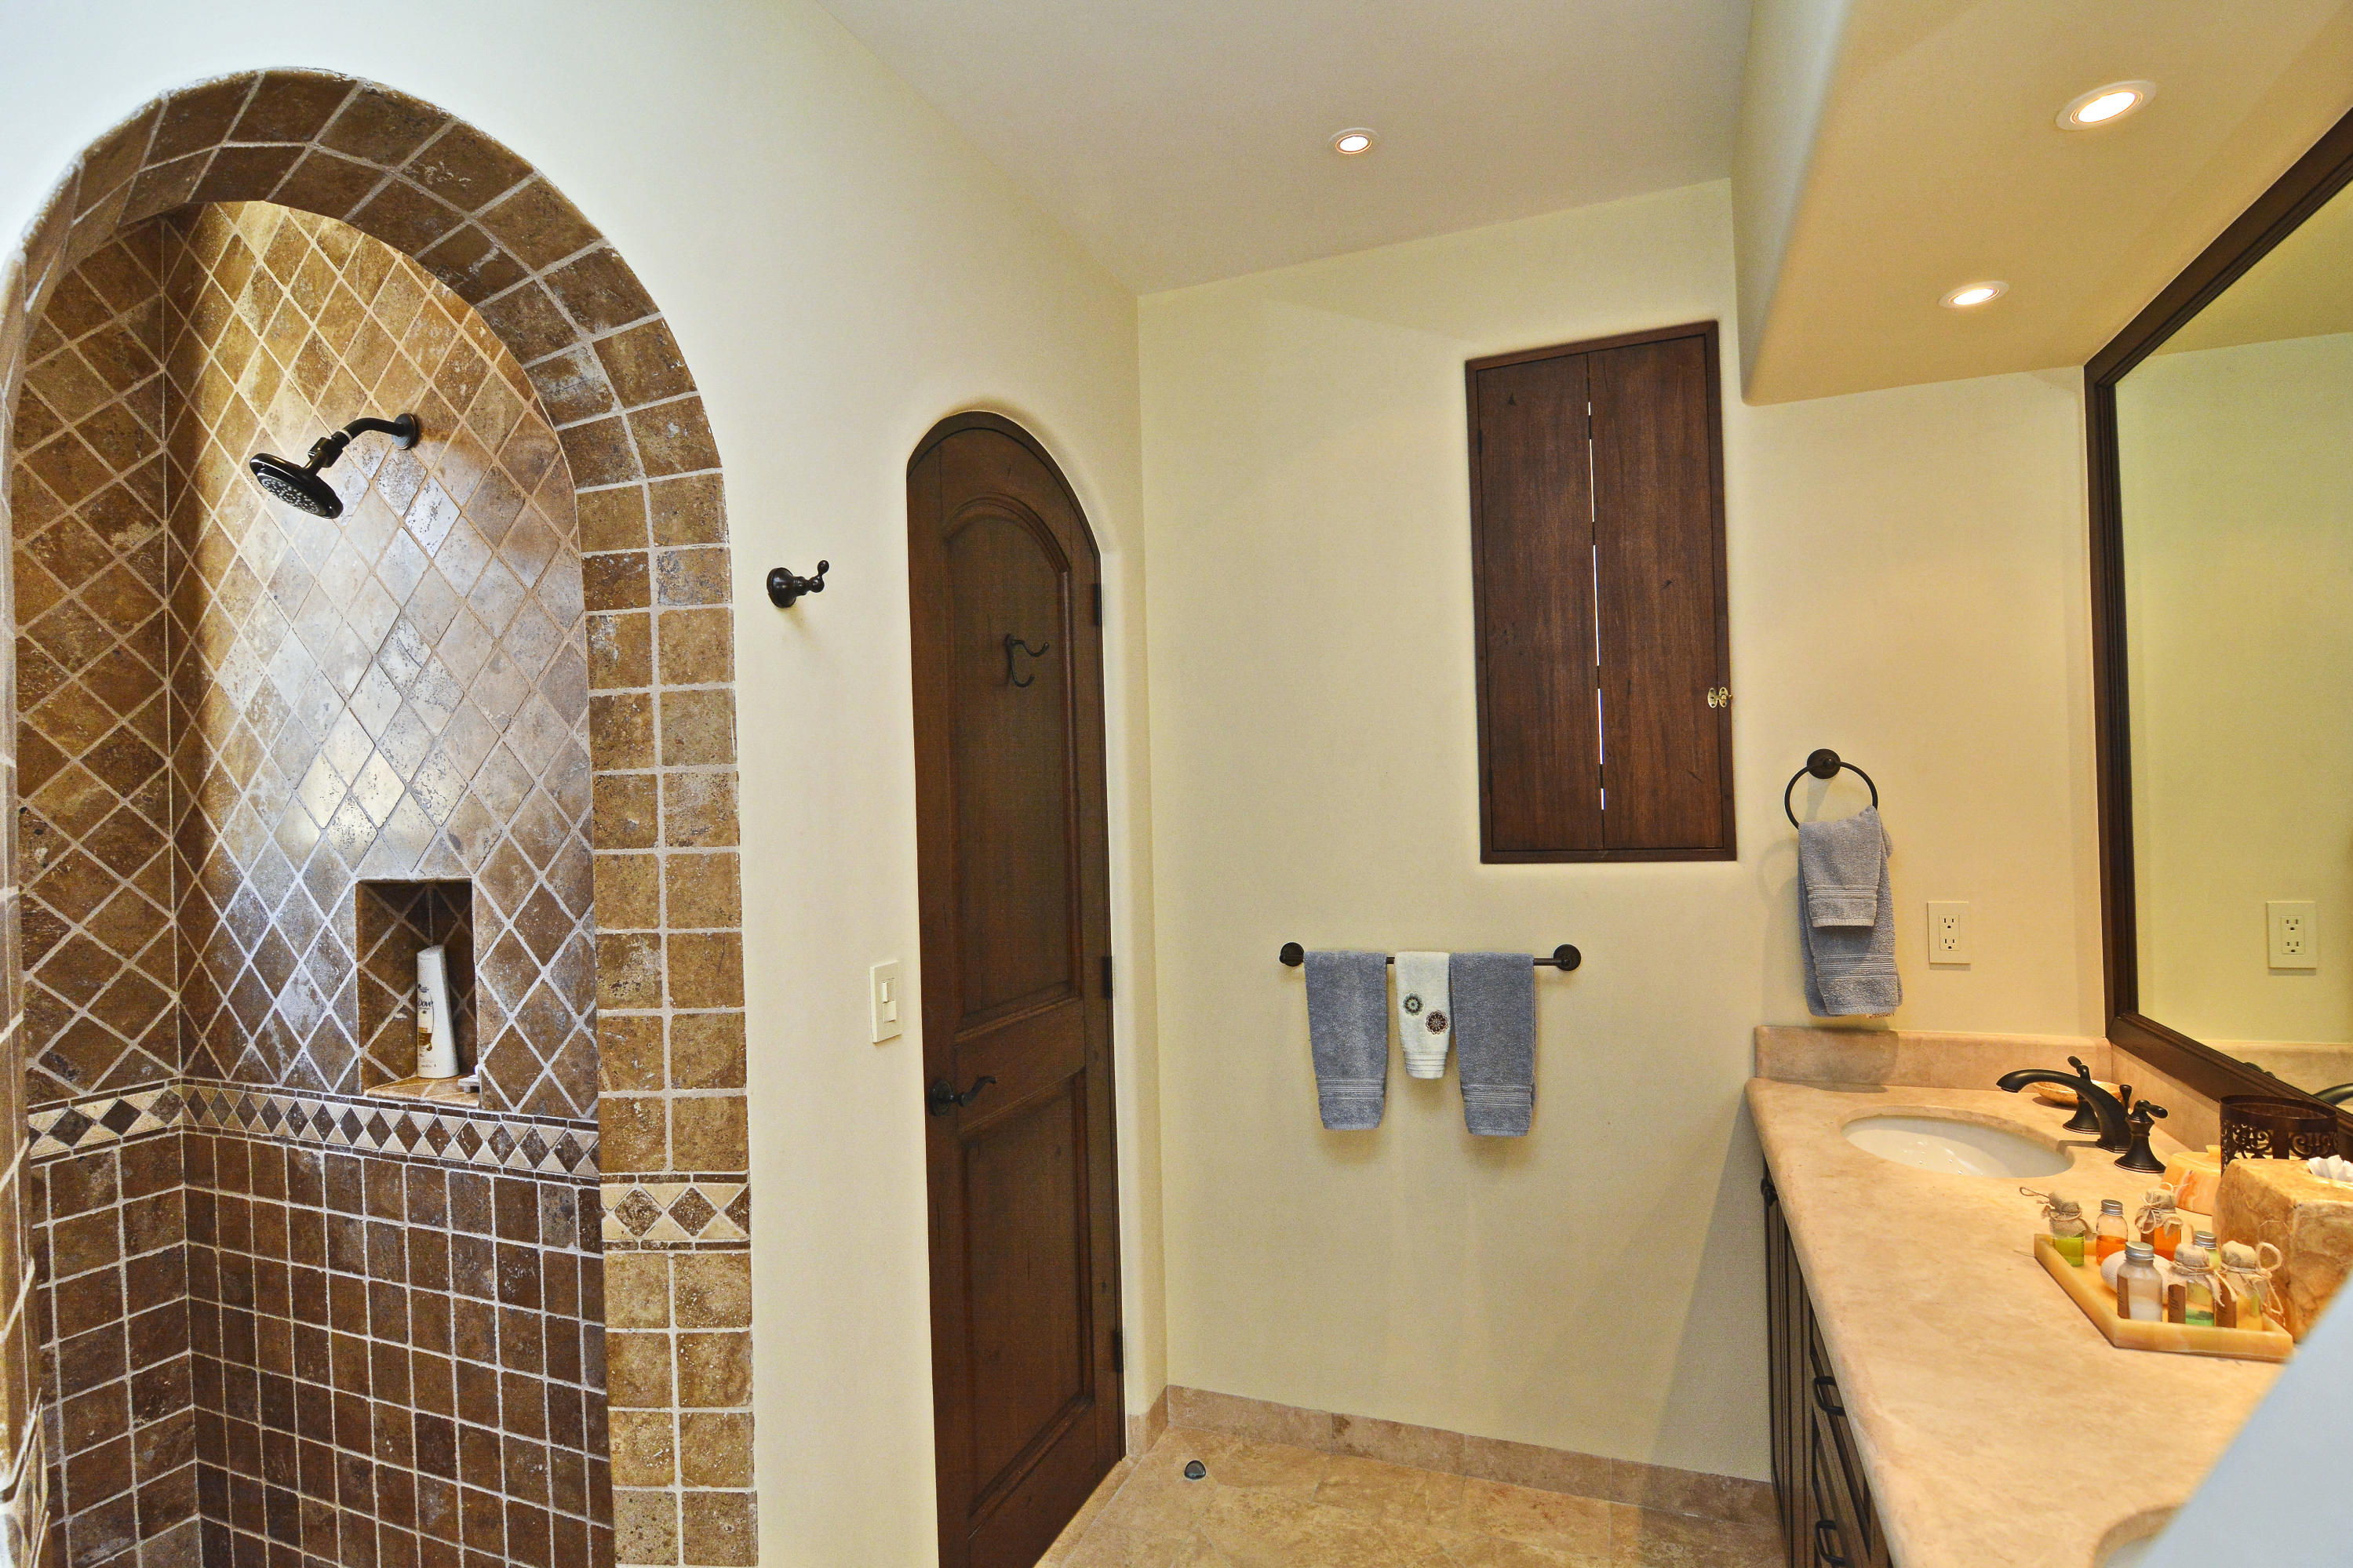 San Jose del Cabo, 2 Bedrooms Bedrooms, 5 Rooms Rooms,2 BathroomsBathrooms,Condo,For Sale,Jose Maria Morelos,19-1382